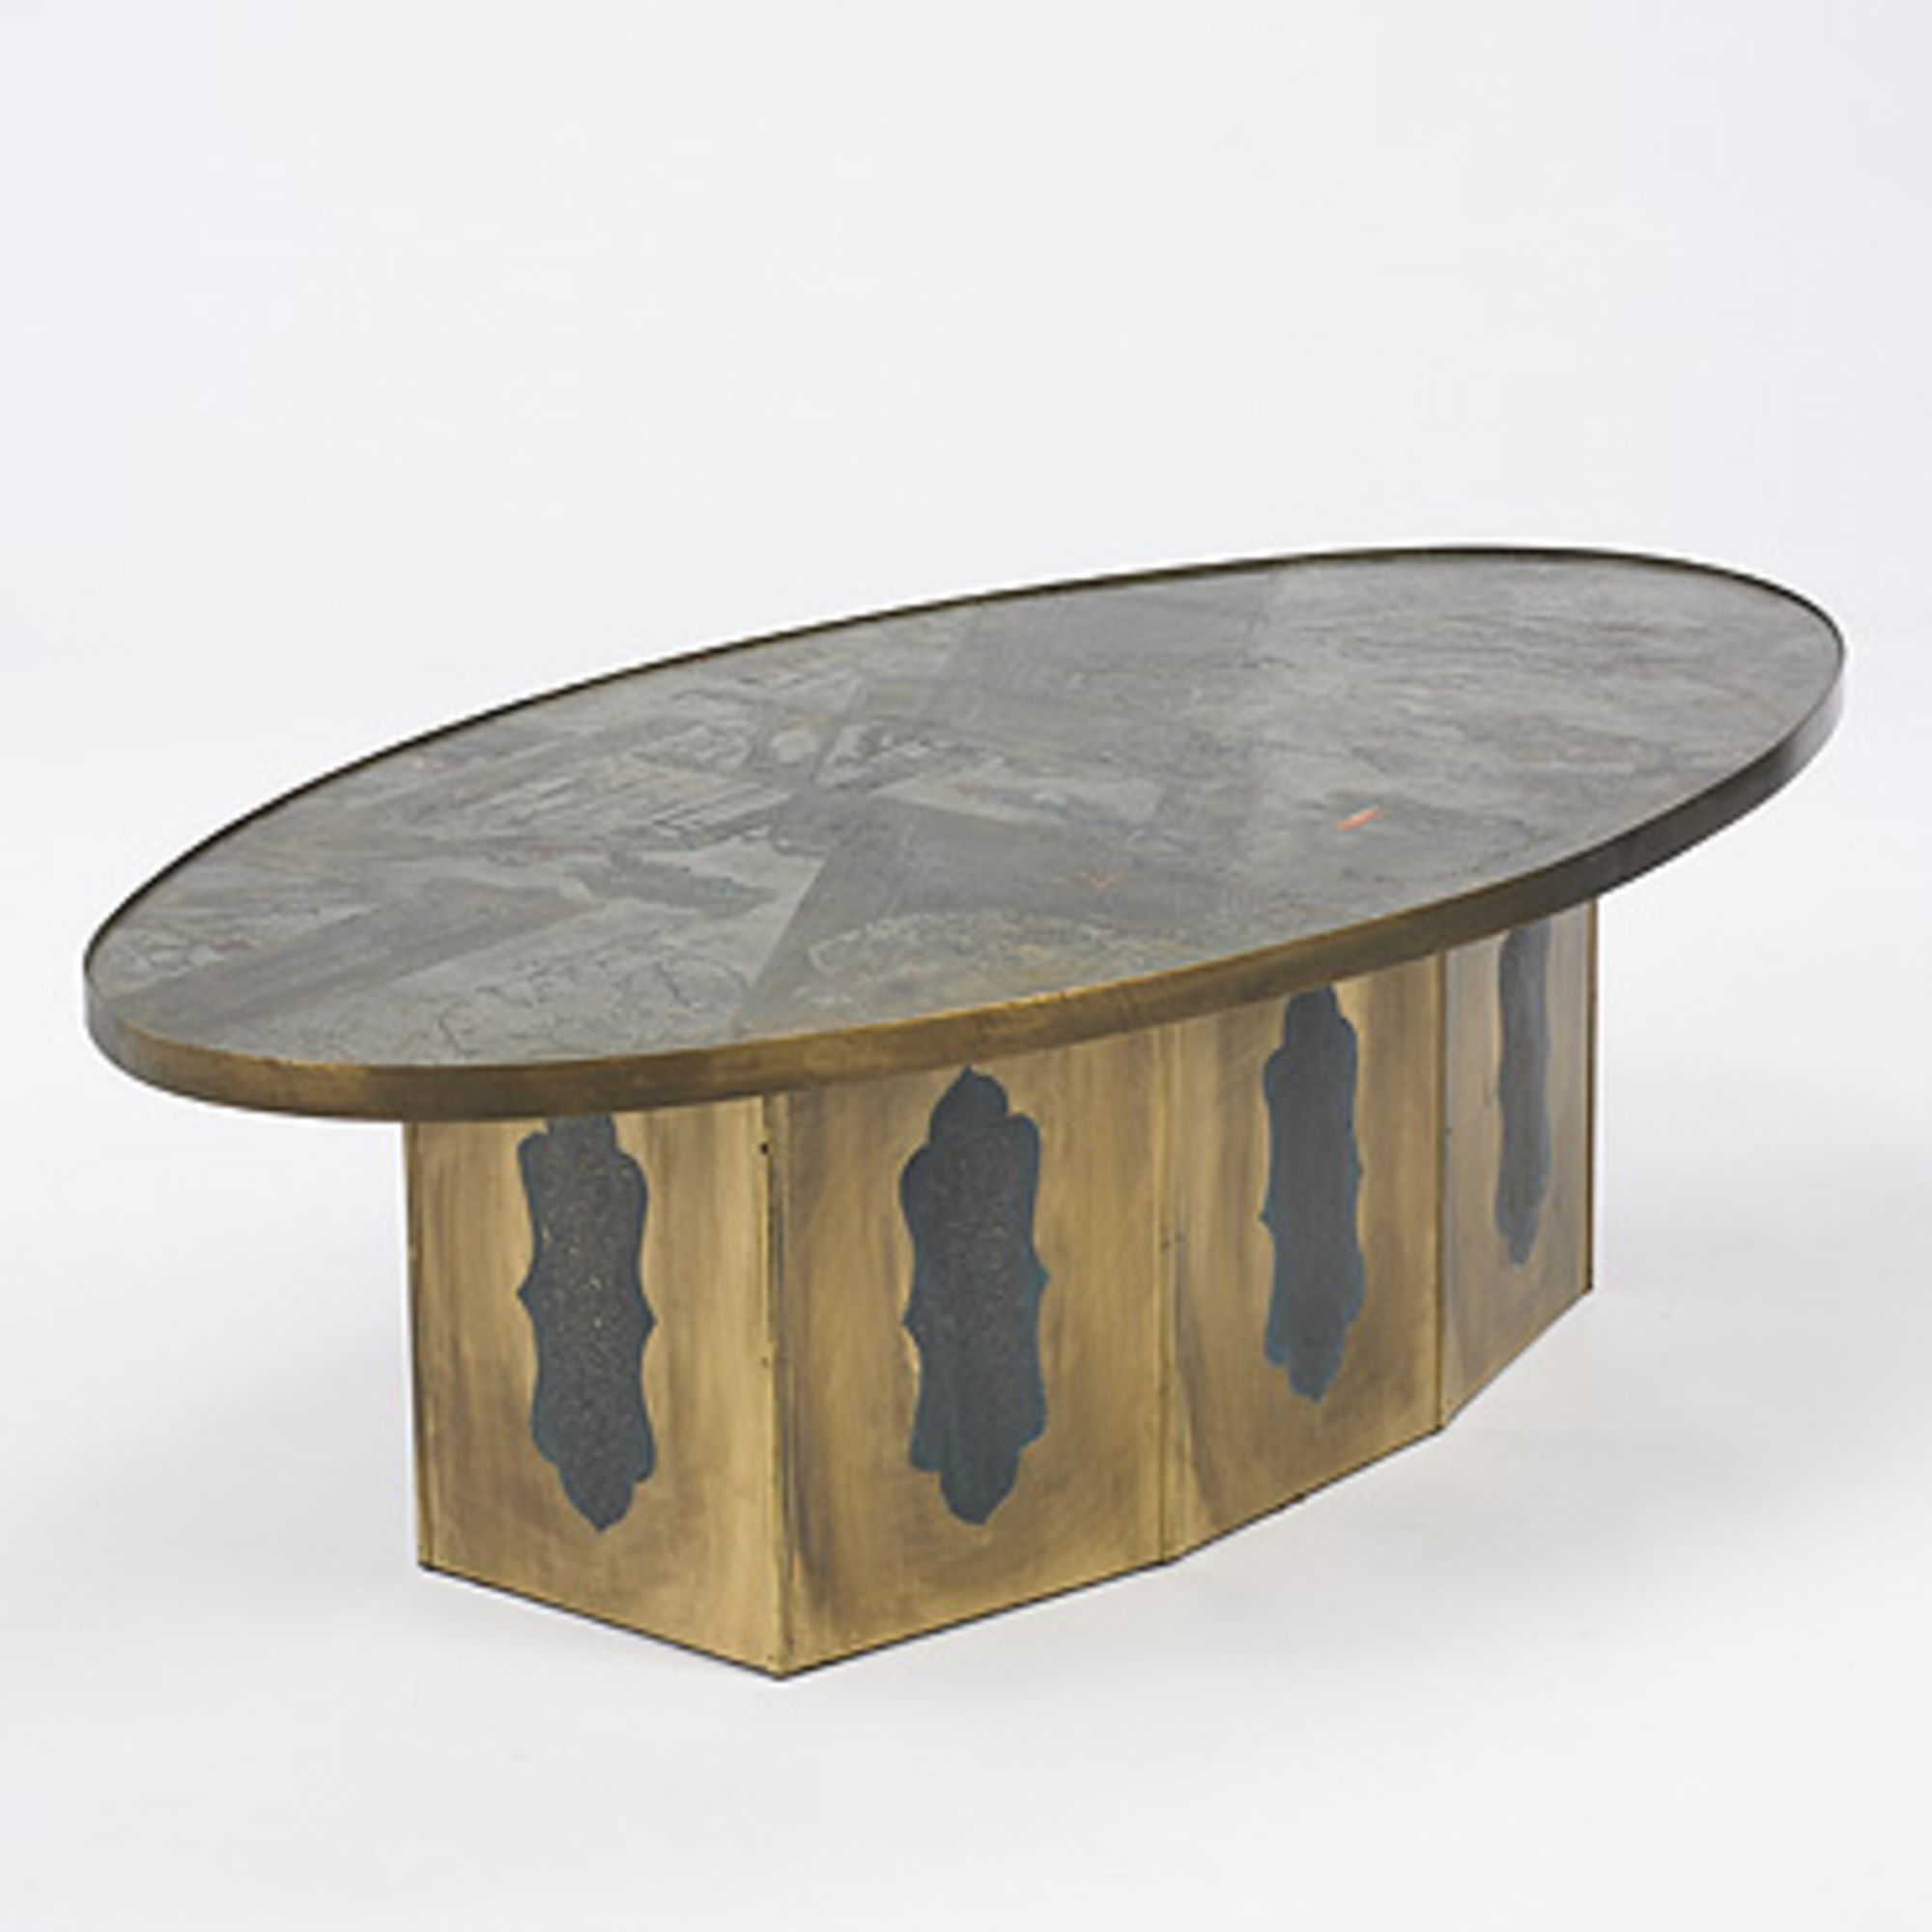 264: PHILIP AND KELVIN LAVERNE, Coffee Table U003c Important 20th Century  Design Session 1, 20 May 2007 U003c Auctions | Wright: Auctions Of Art And  Design